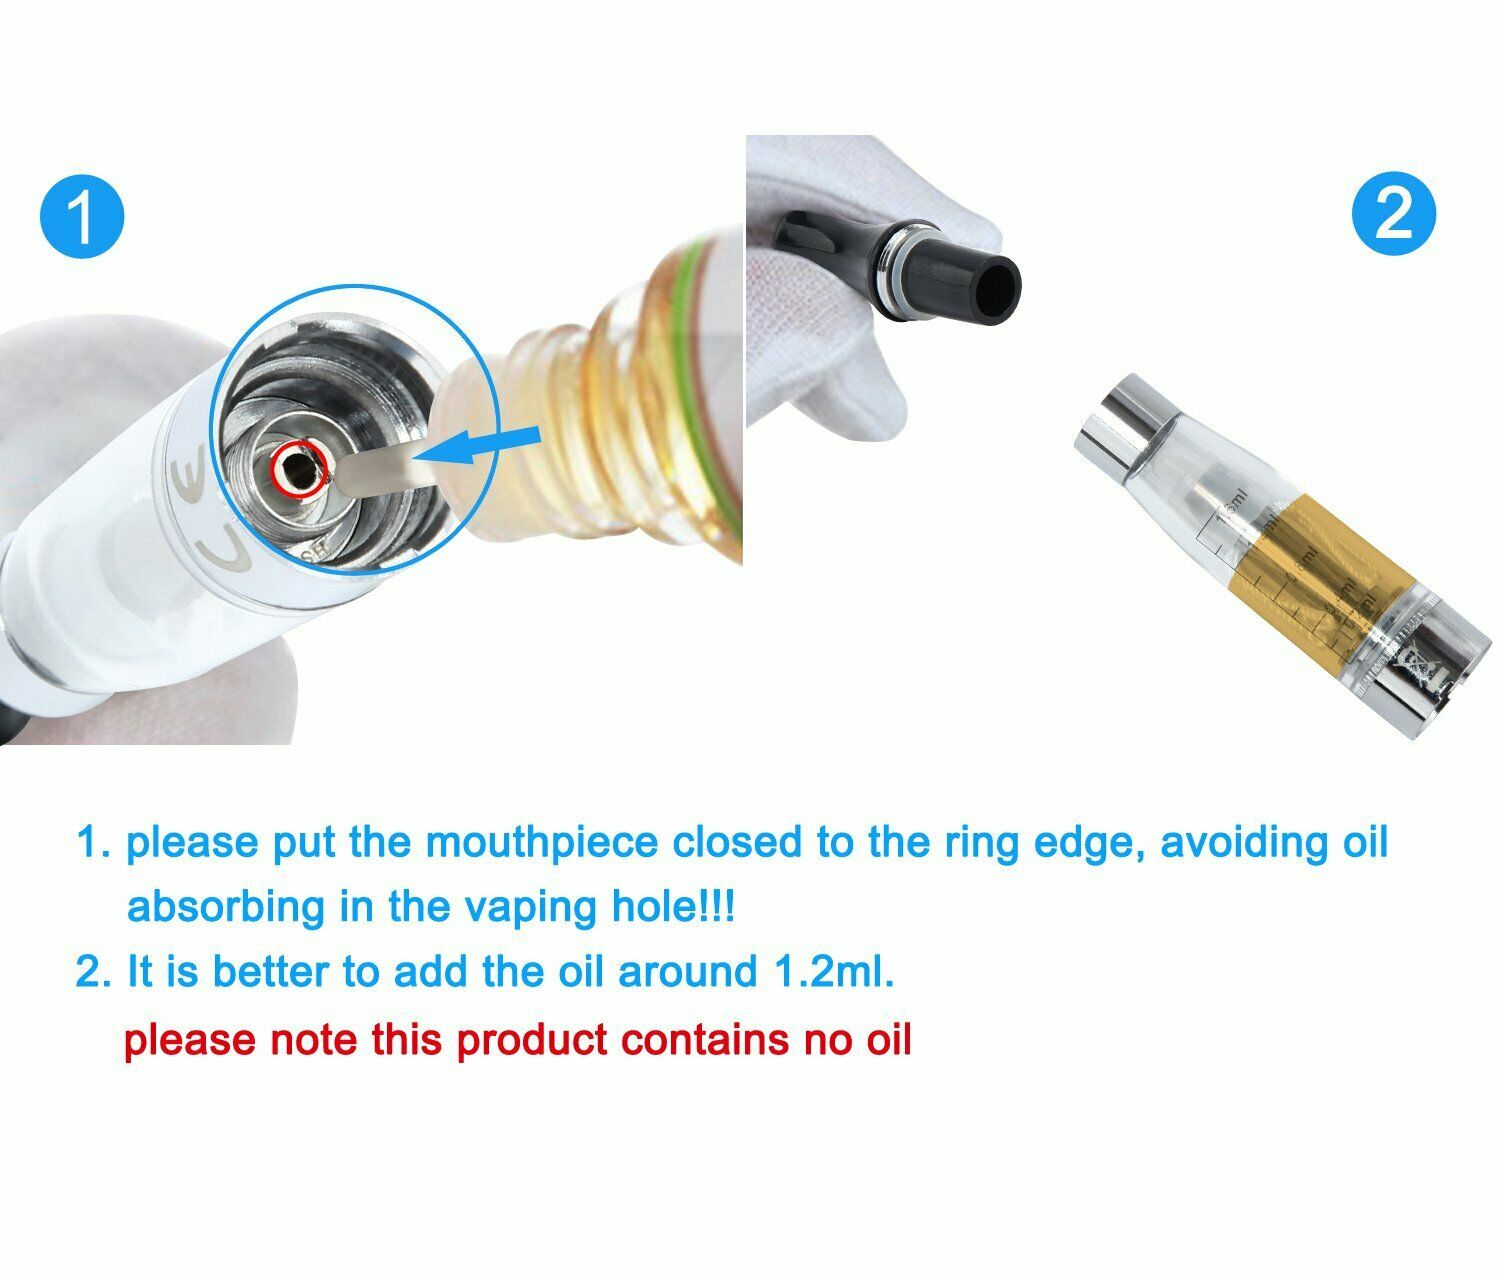 CE4 Atomizer filling instructions